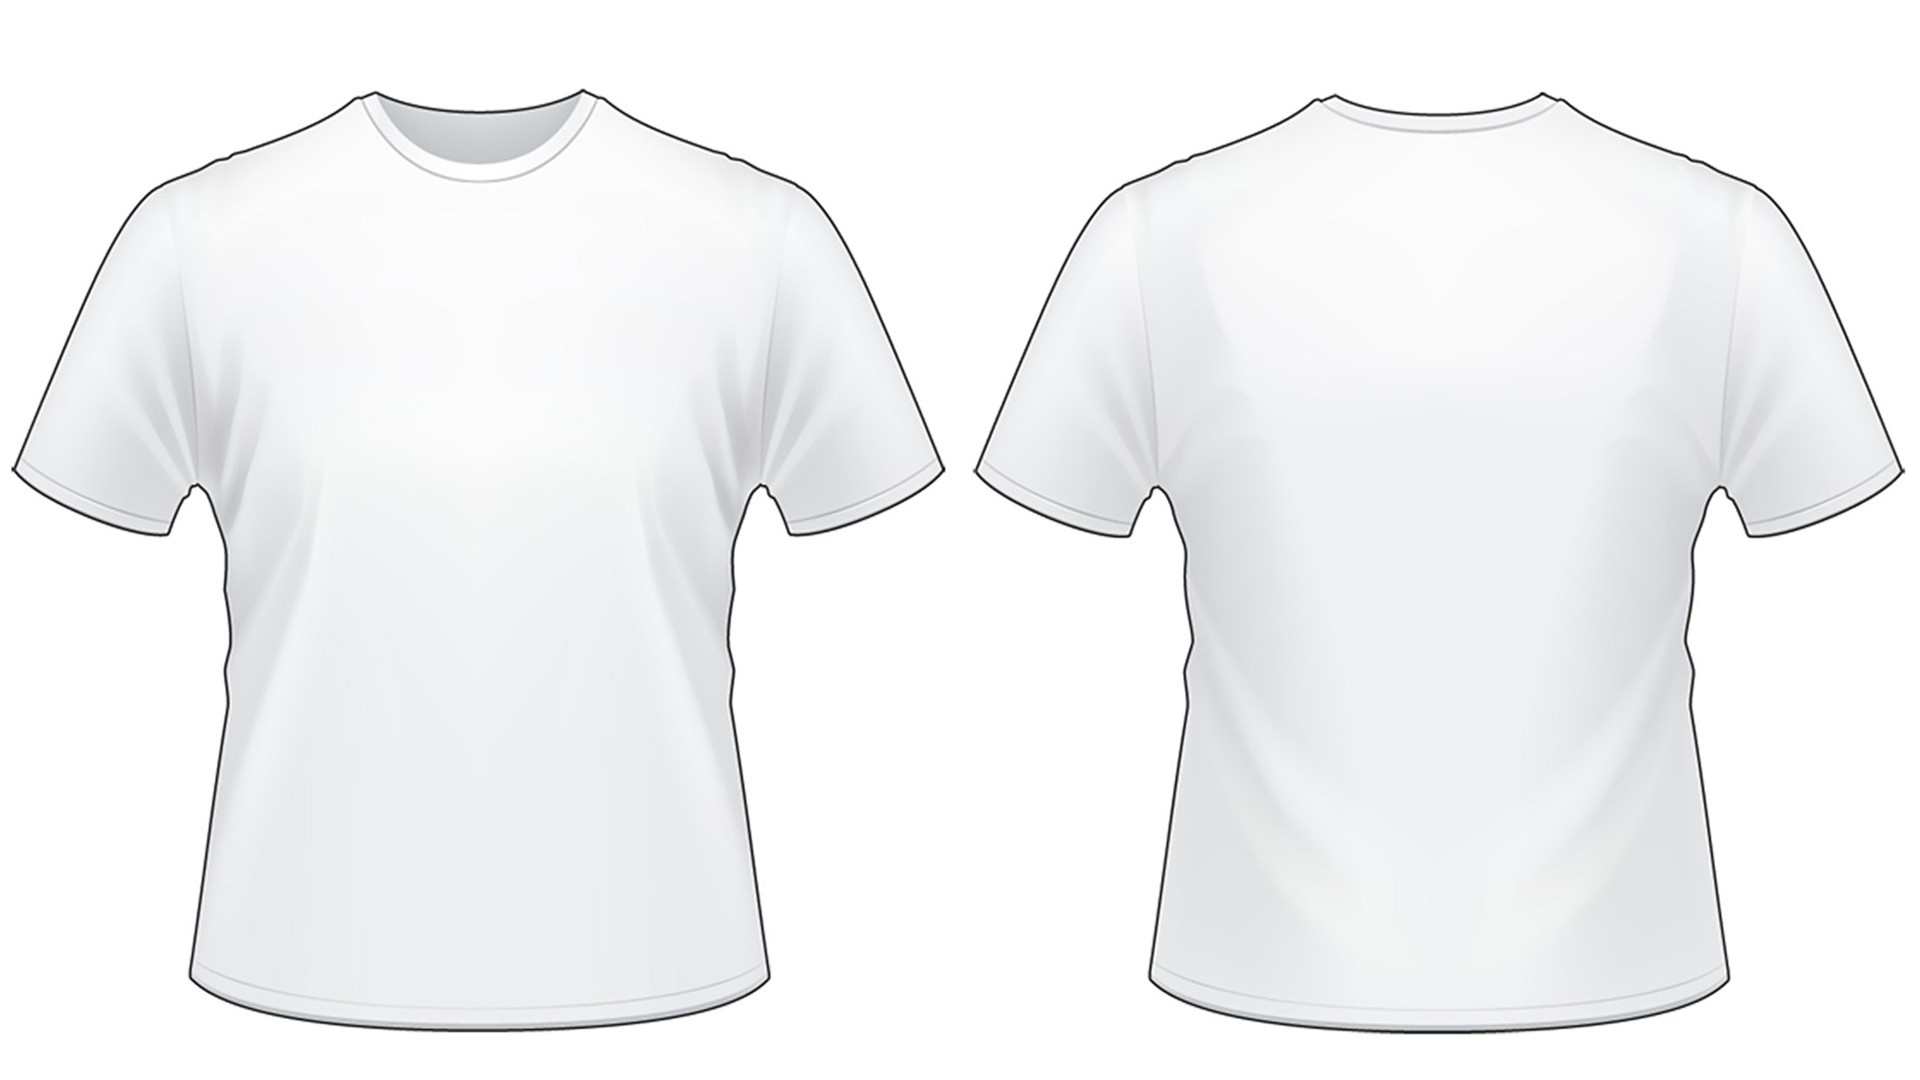 T Shirt Template Design Blank Tshirt Template Worksheet In Png Hd Wallpapers